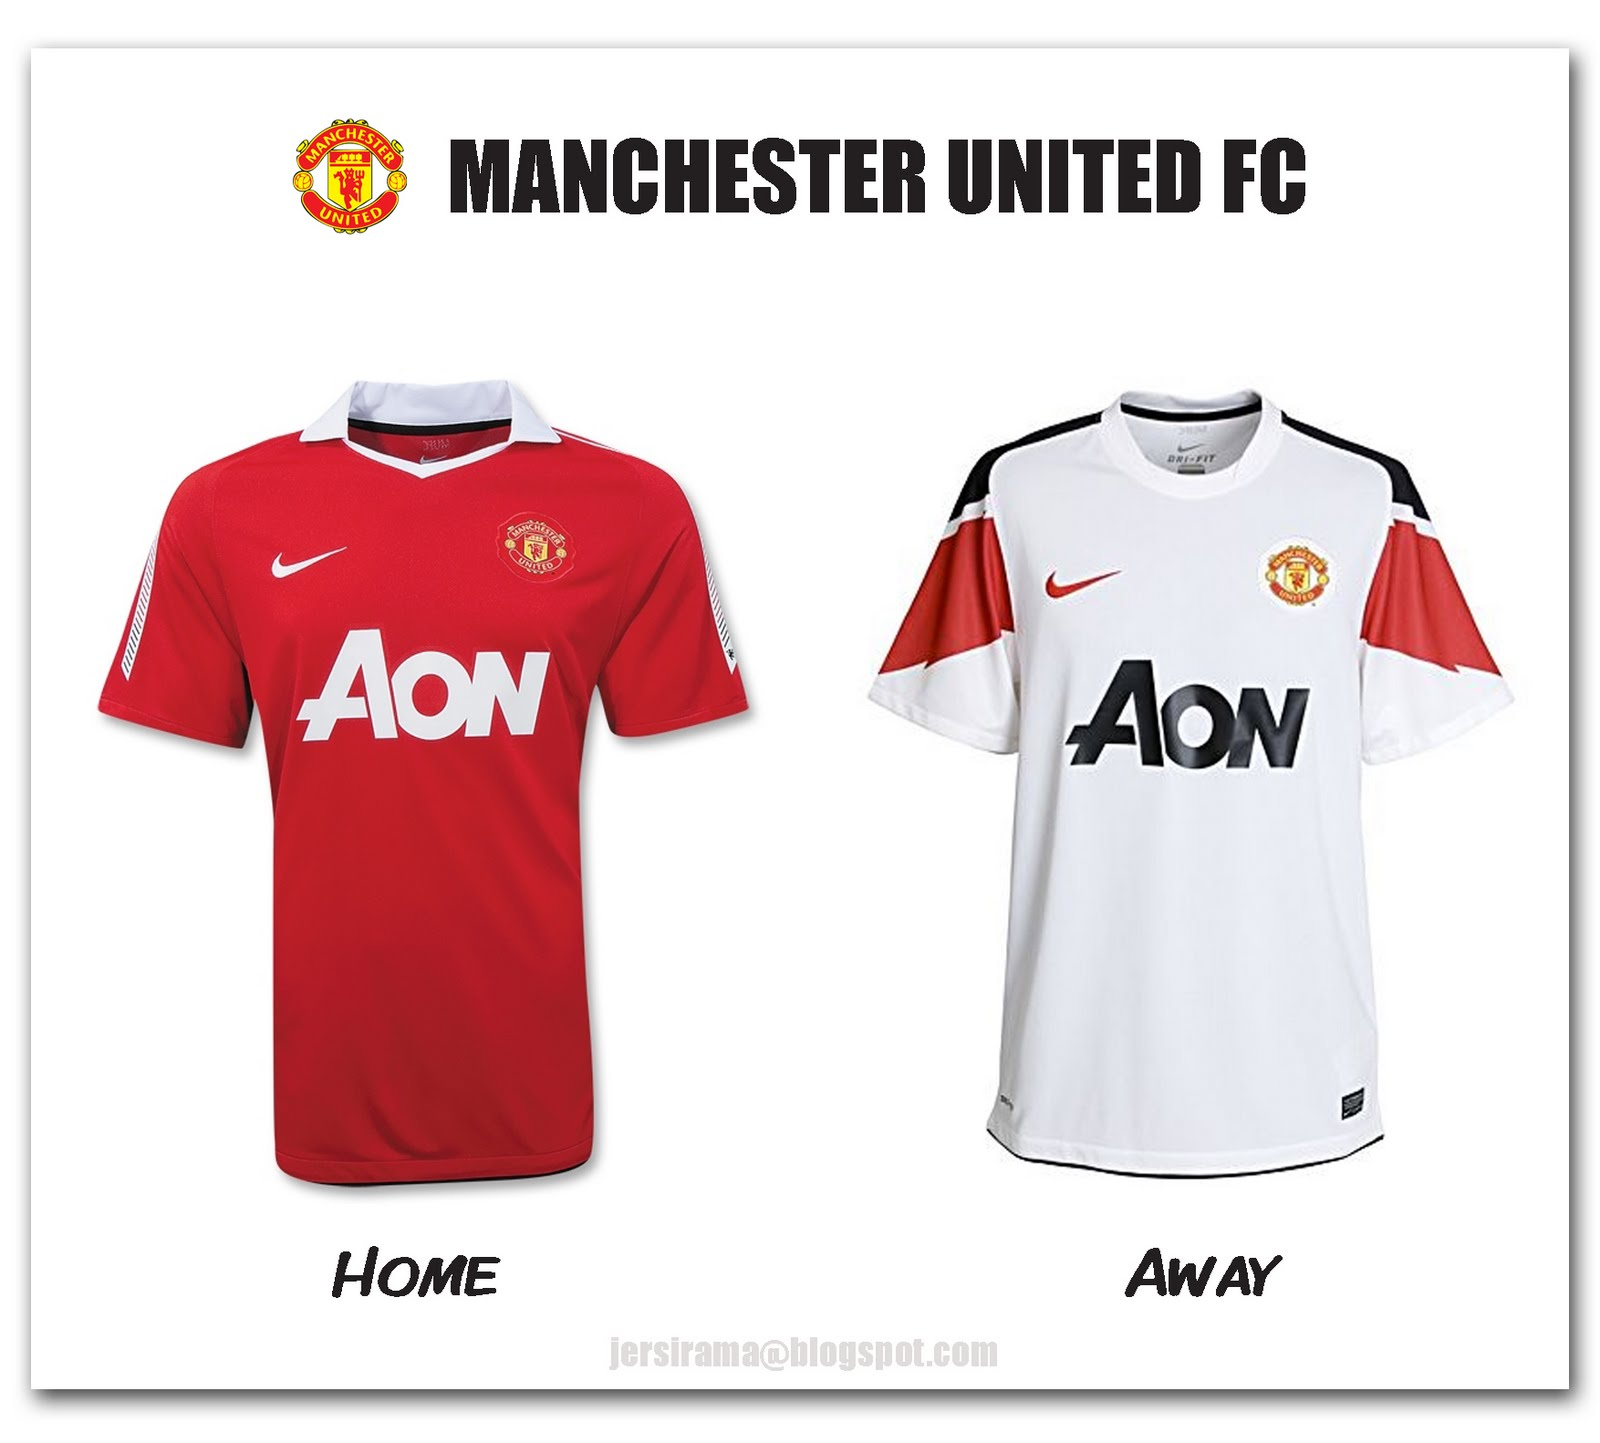 0ae9f2a05 Manchester United Home   Away Jersey 2010 2011